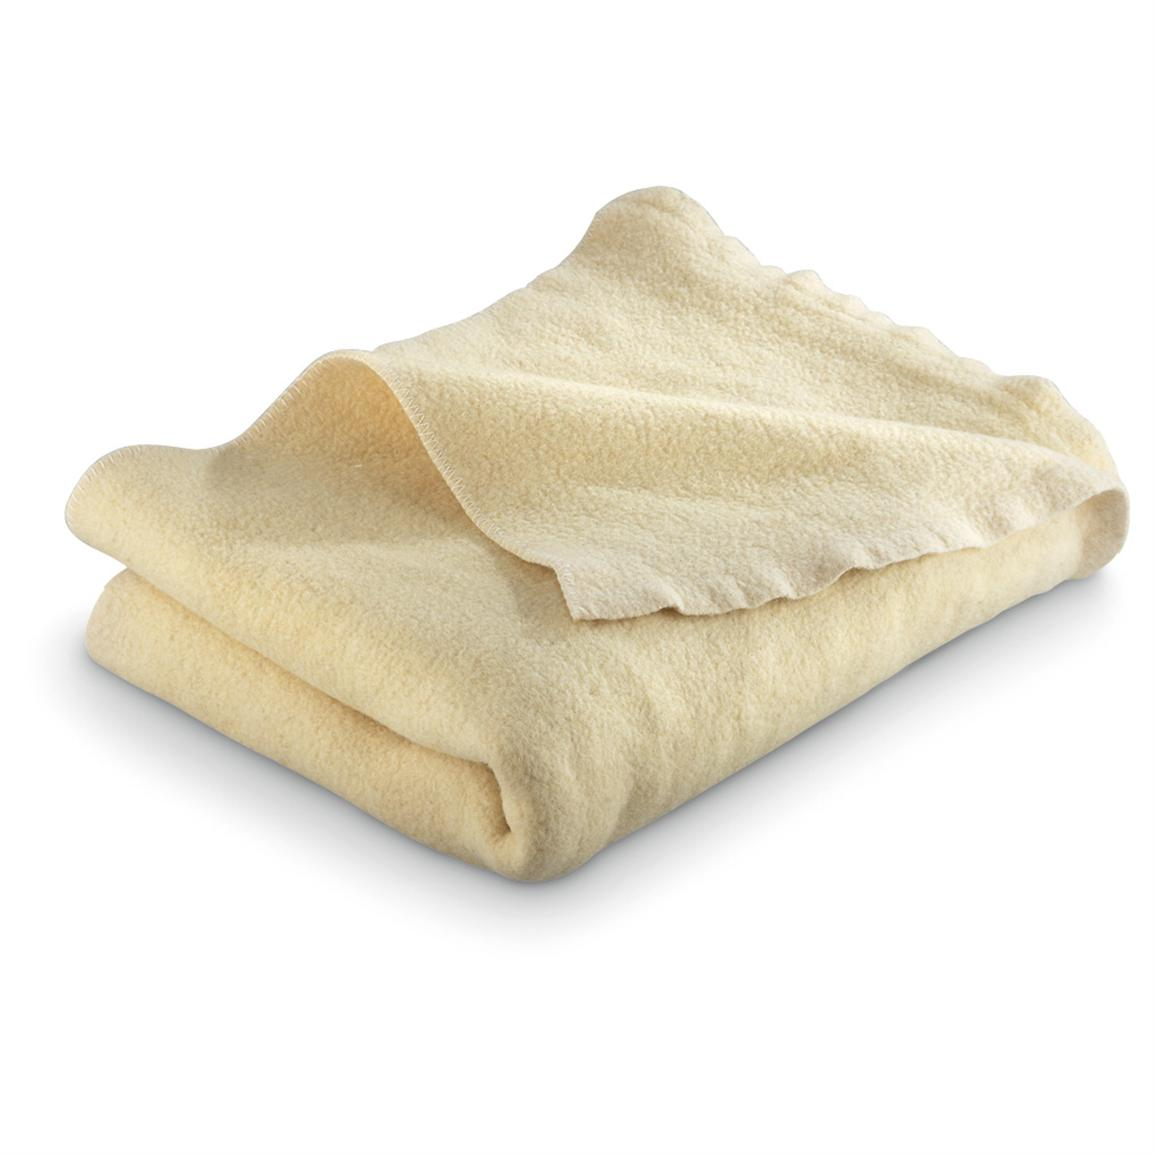 Used Bulgarian Military Surplus Officer's Wool Blanket, Cream • 4 lbs. of insulating warmth